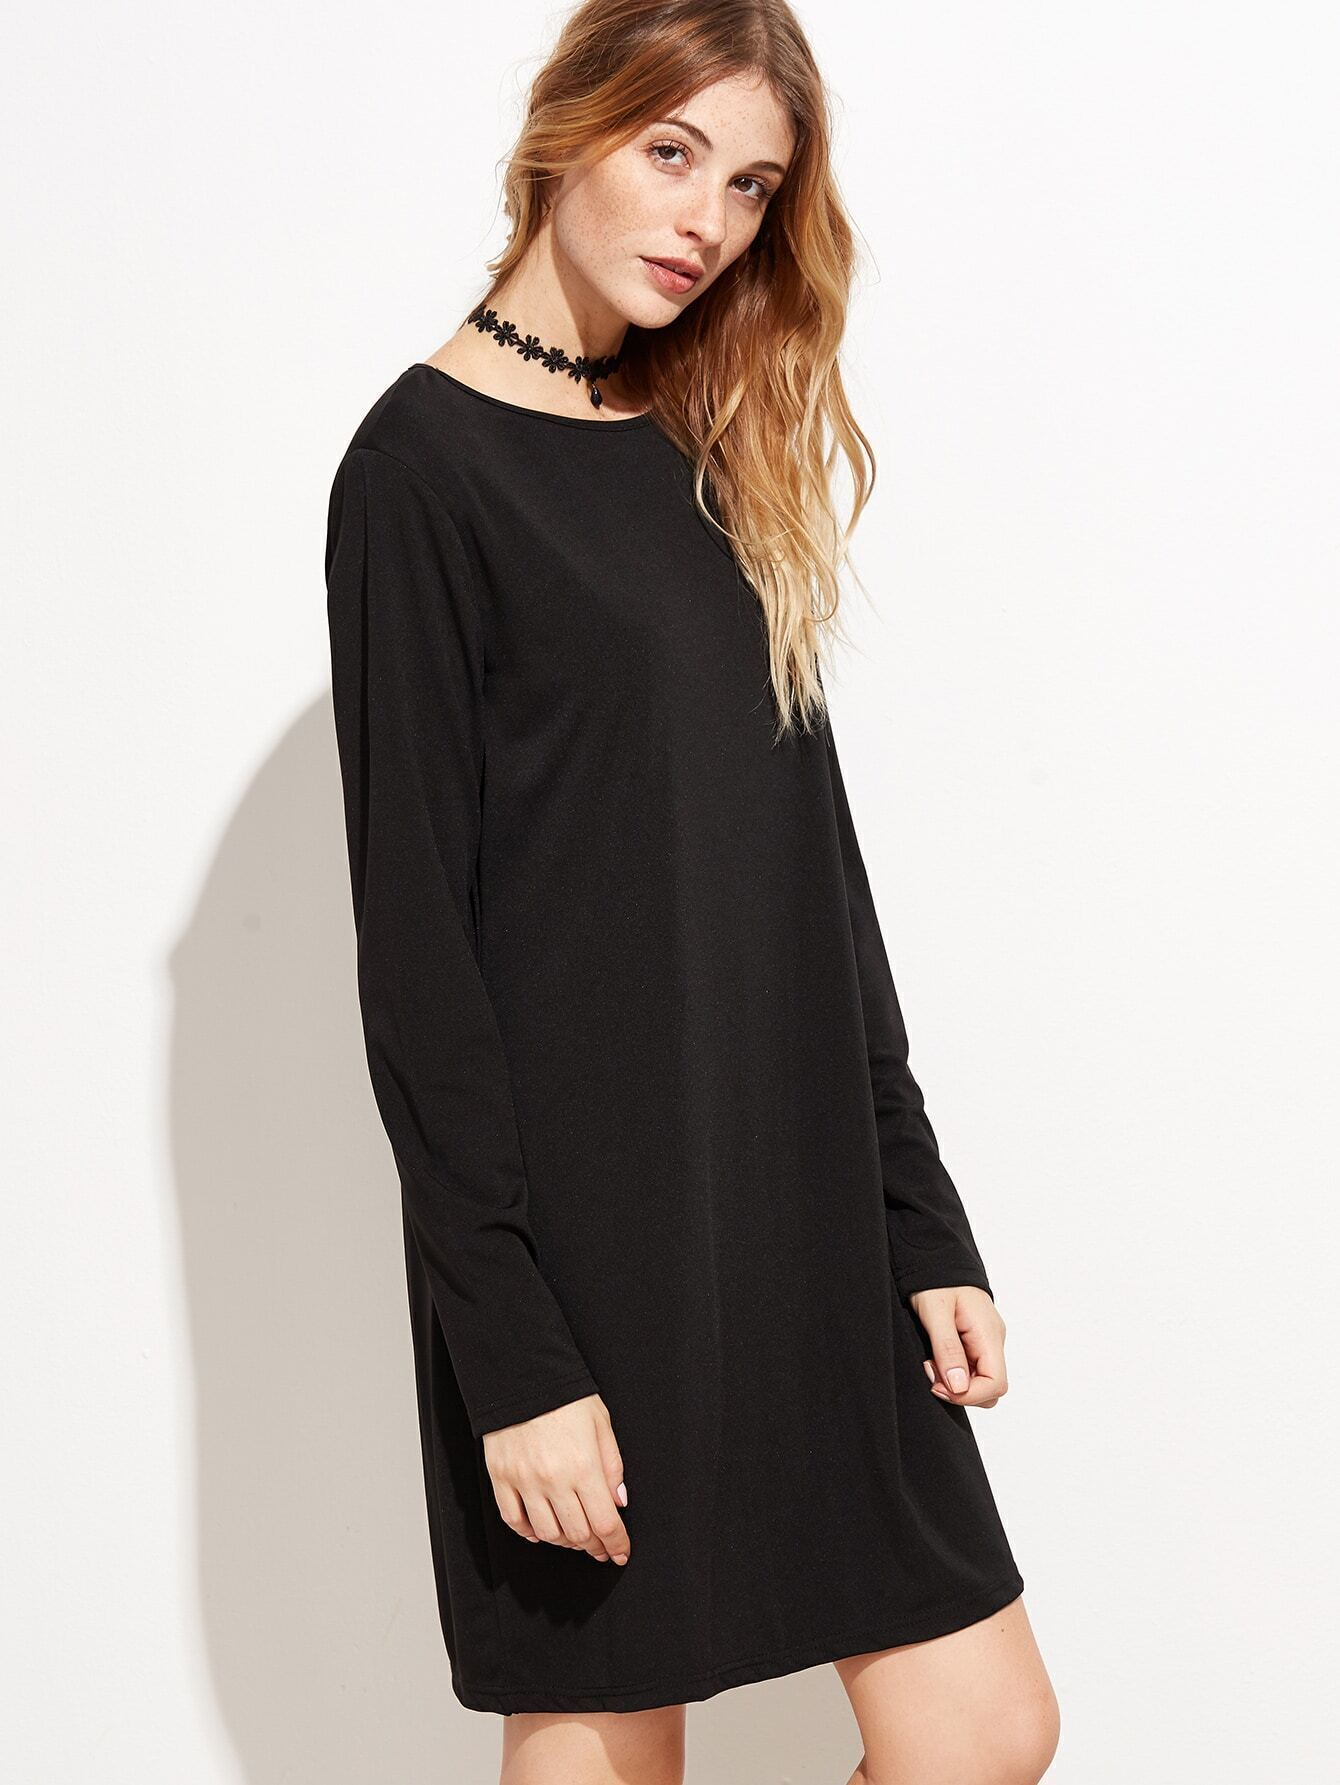 robe t shirt manche longue noir french romwe With robe t shirt longue